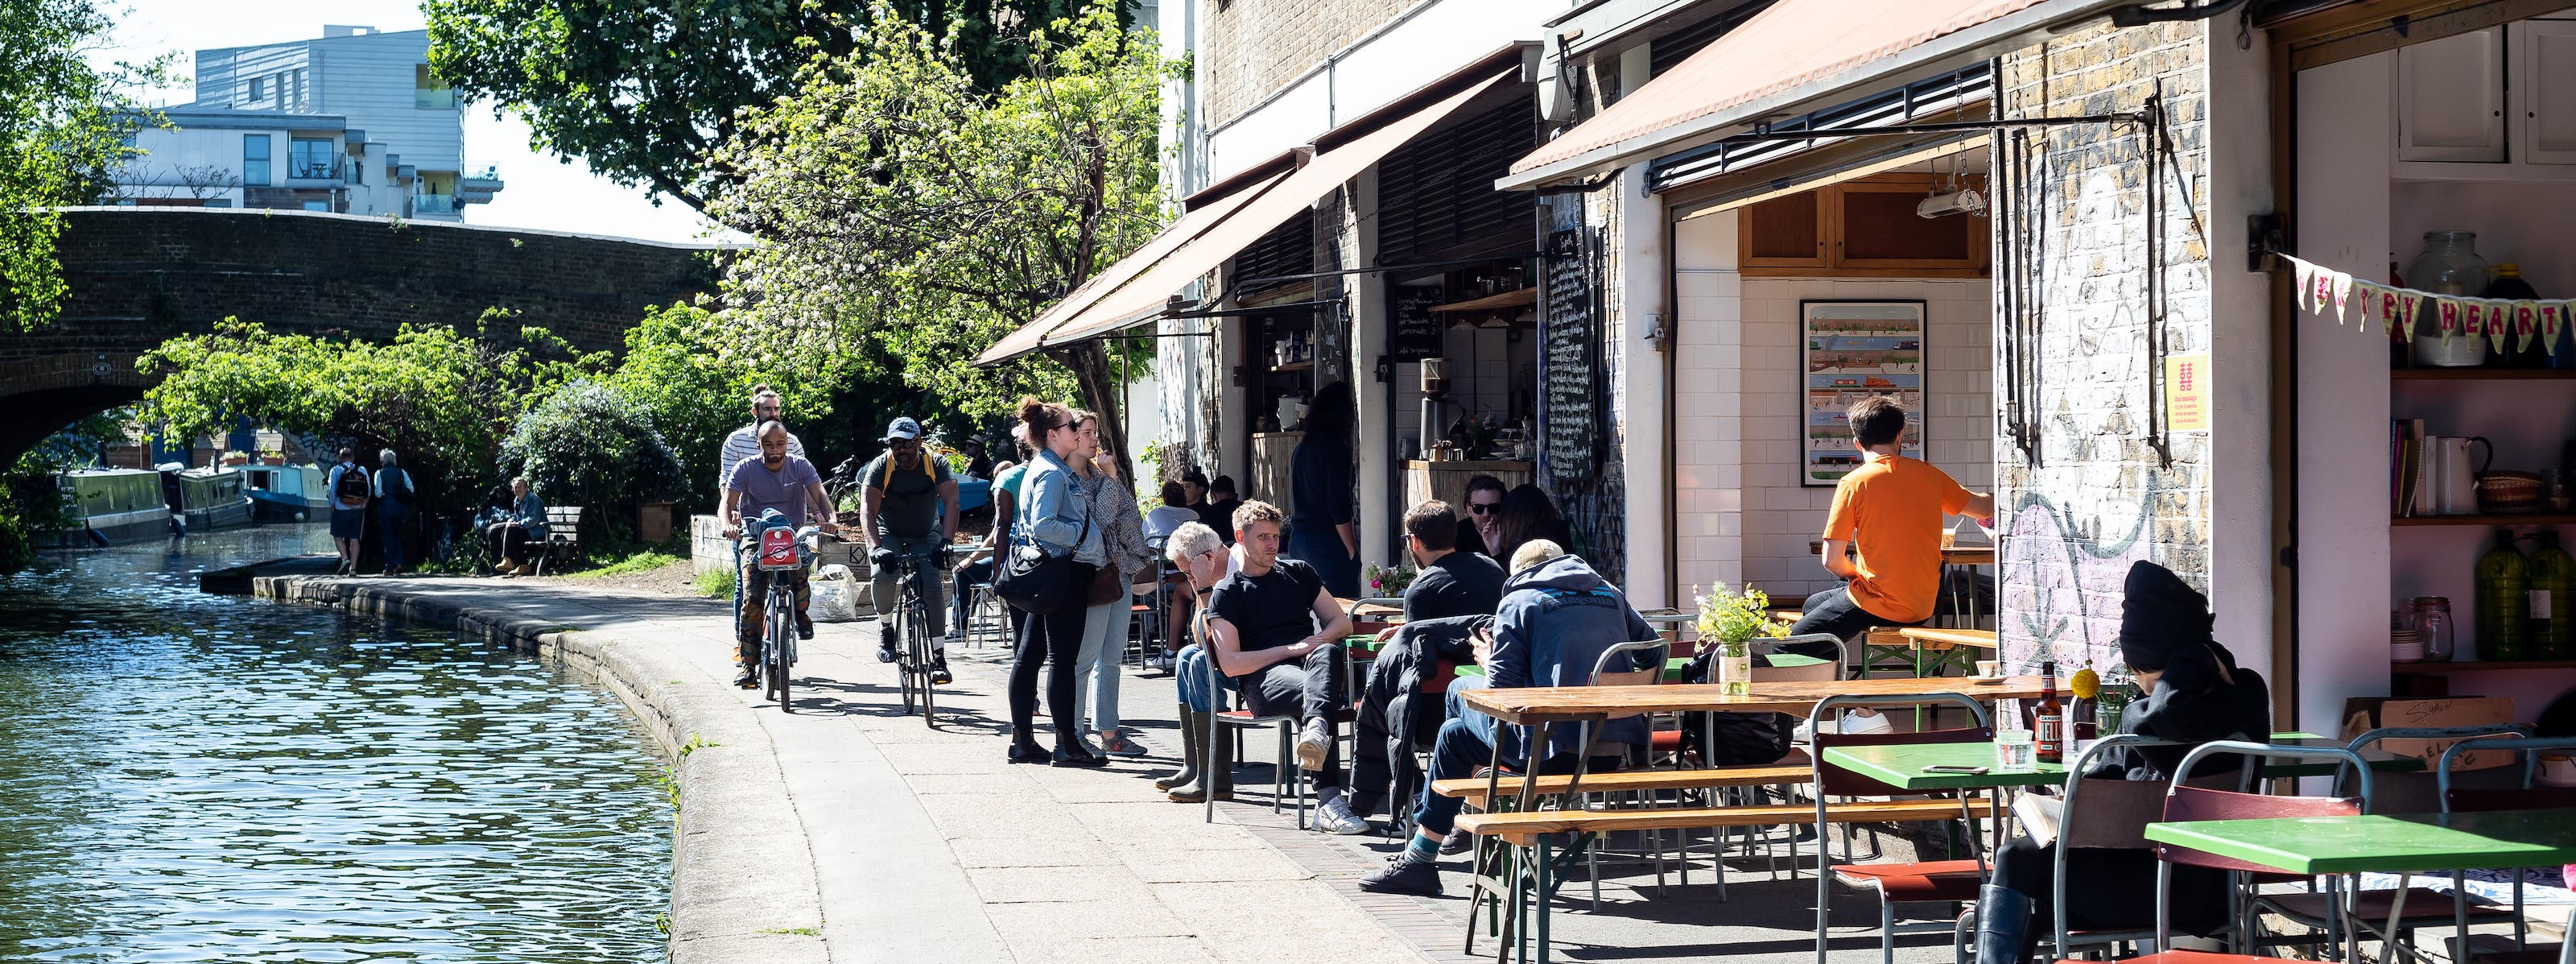 45 Restaurants With Outdoor Seating You Don't Need To Have A Reservation For - London - The Infatuation